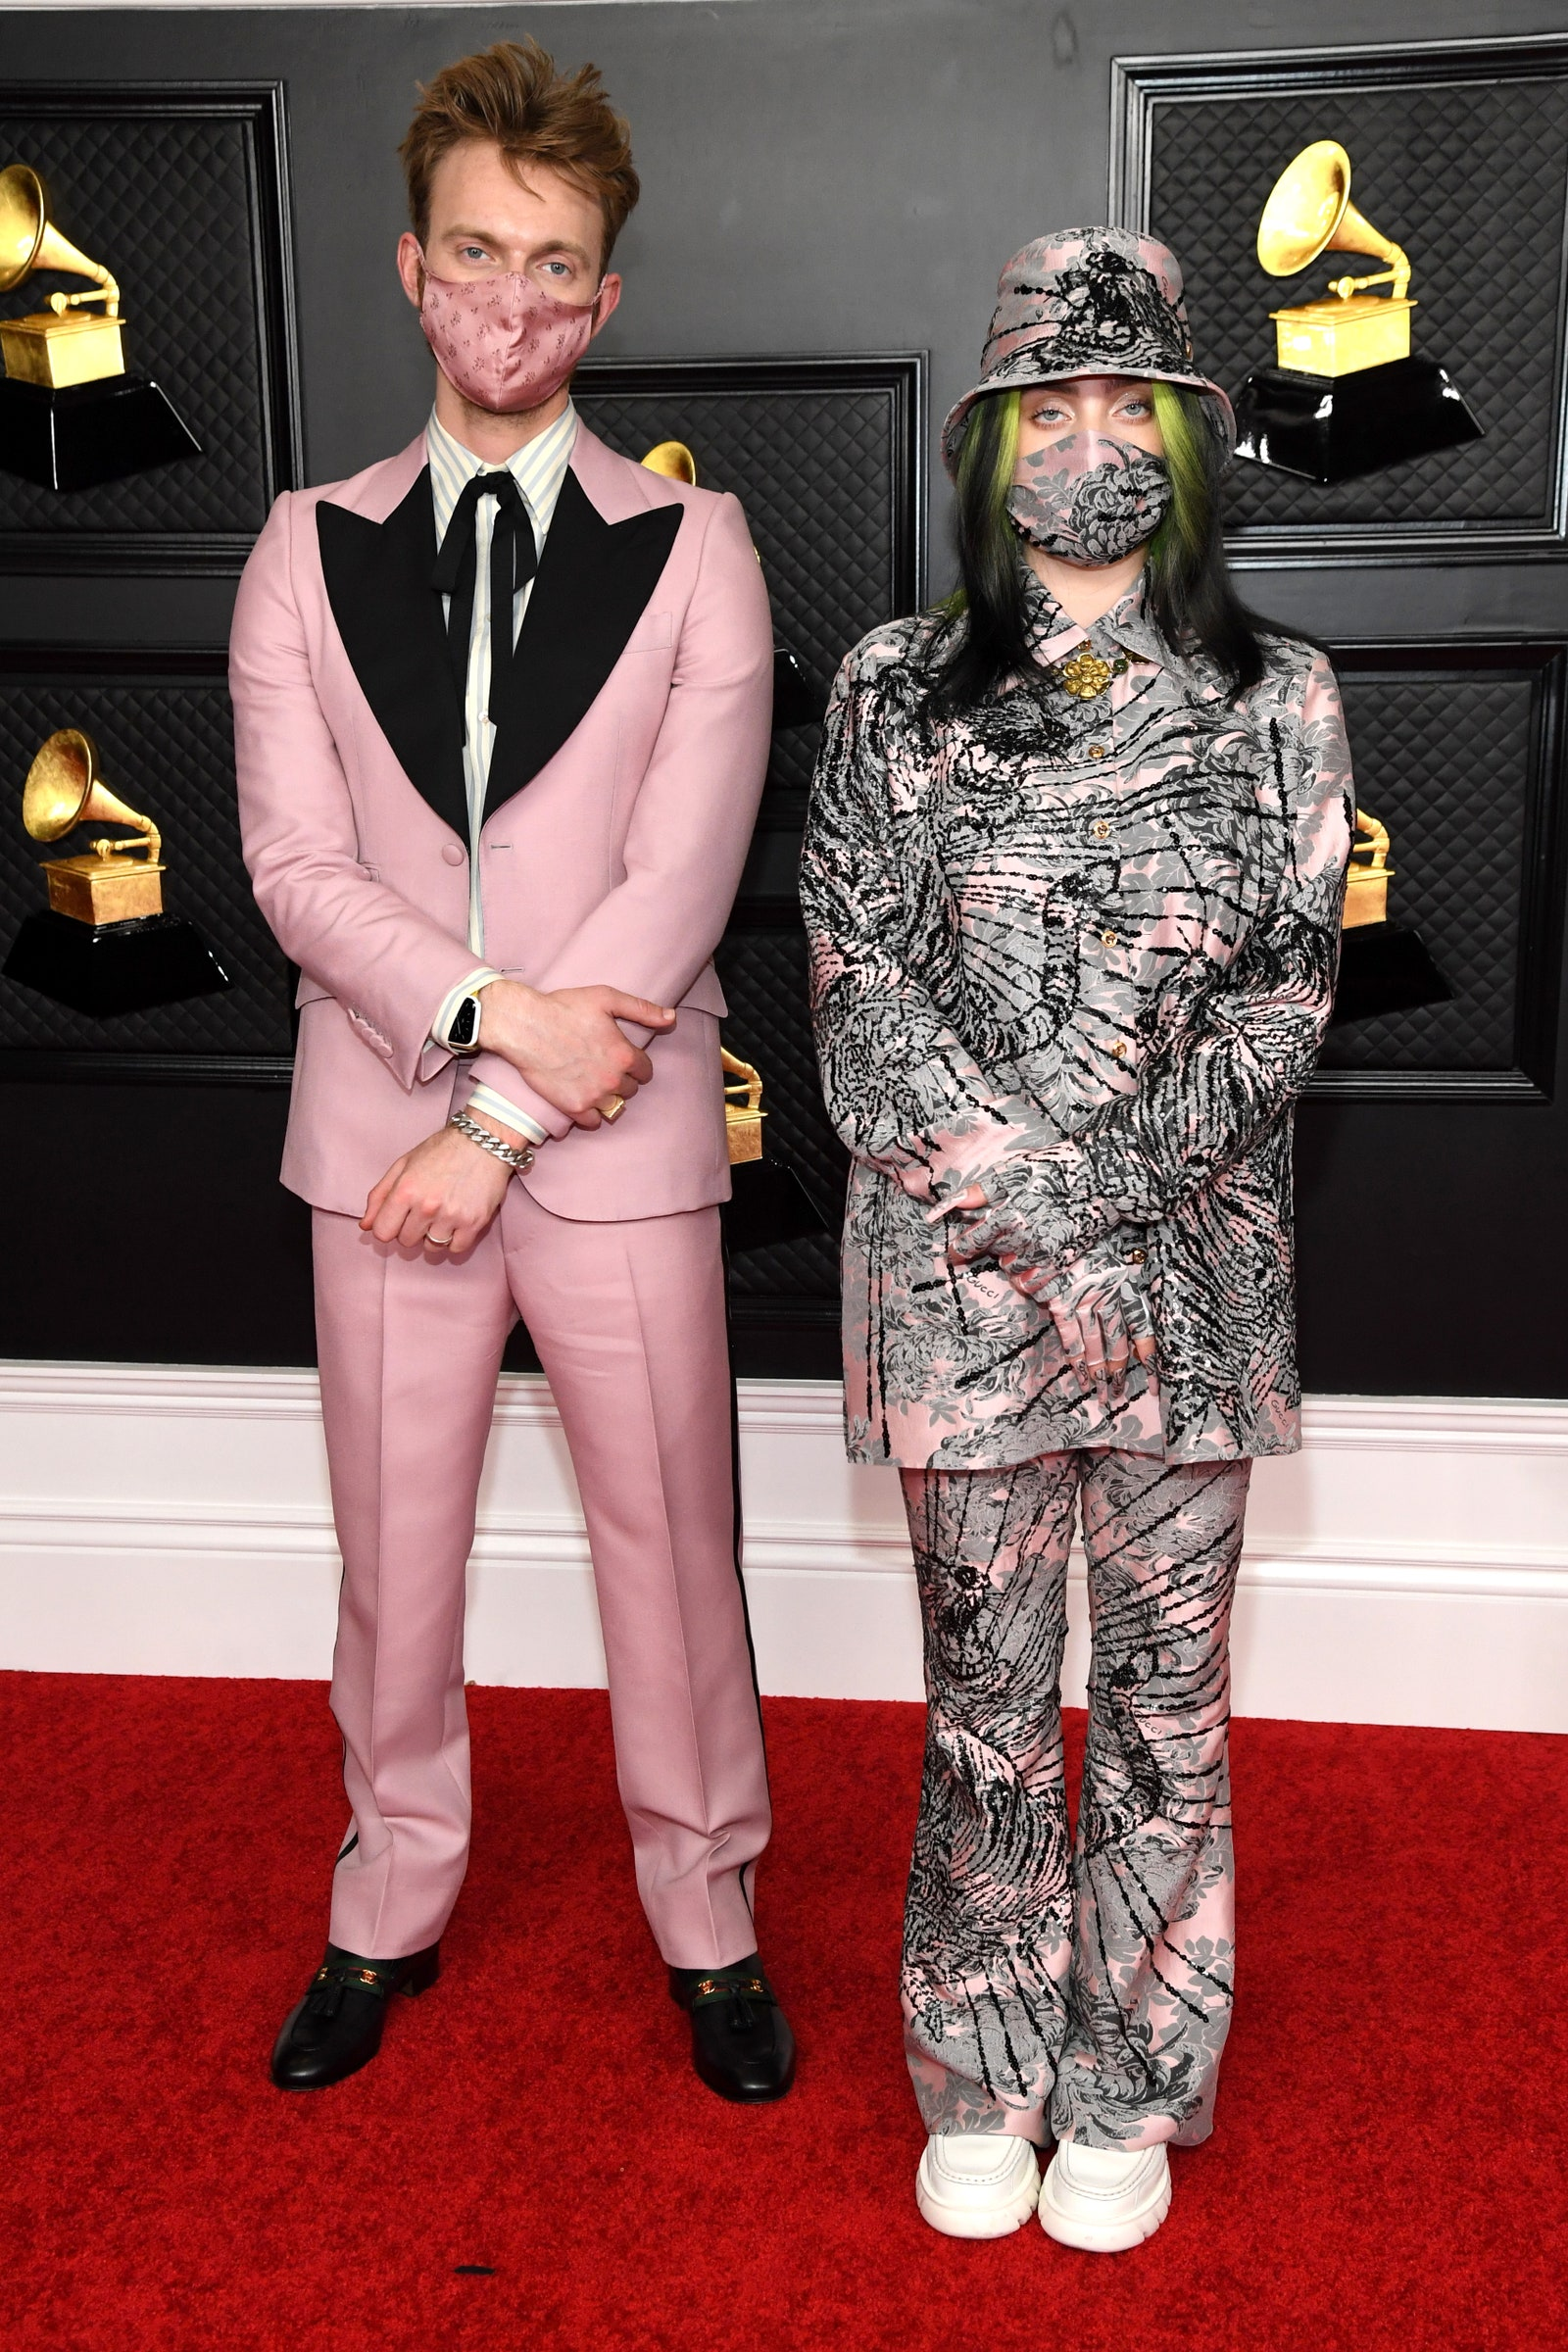 FINNEAS and Billie Eilish posing on the red carpet at the Grammys 2021.